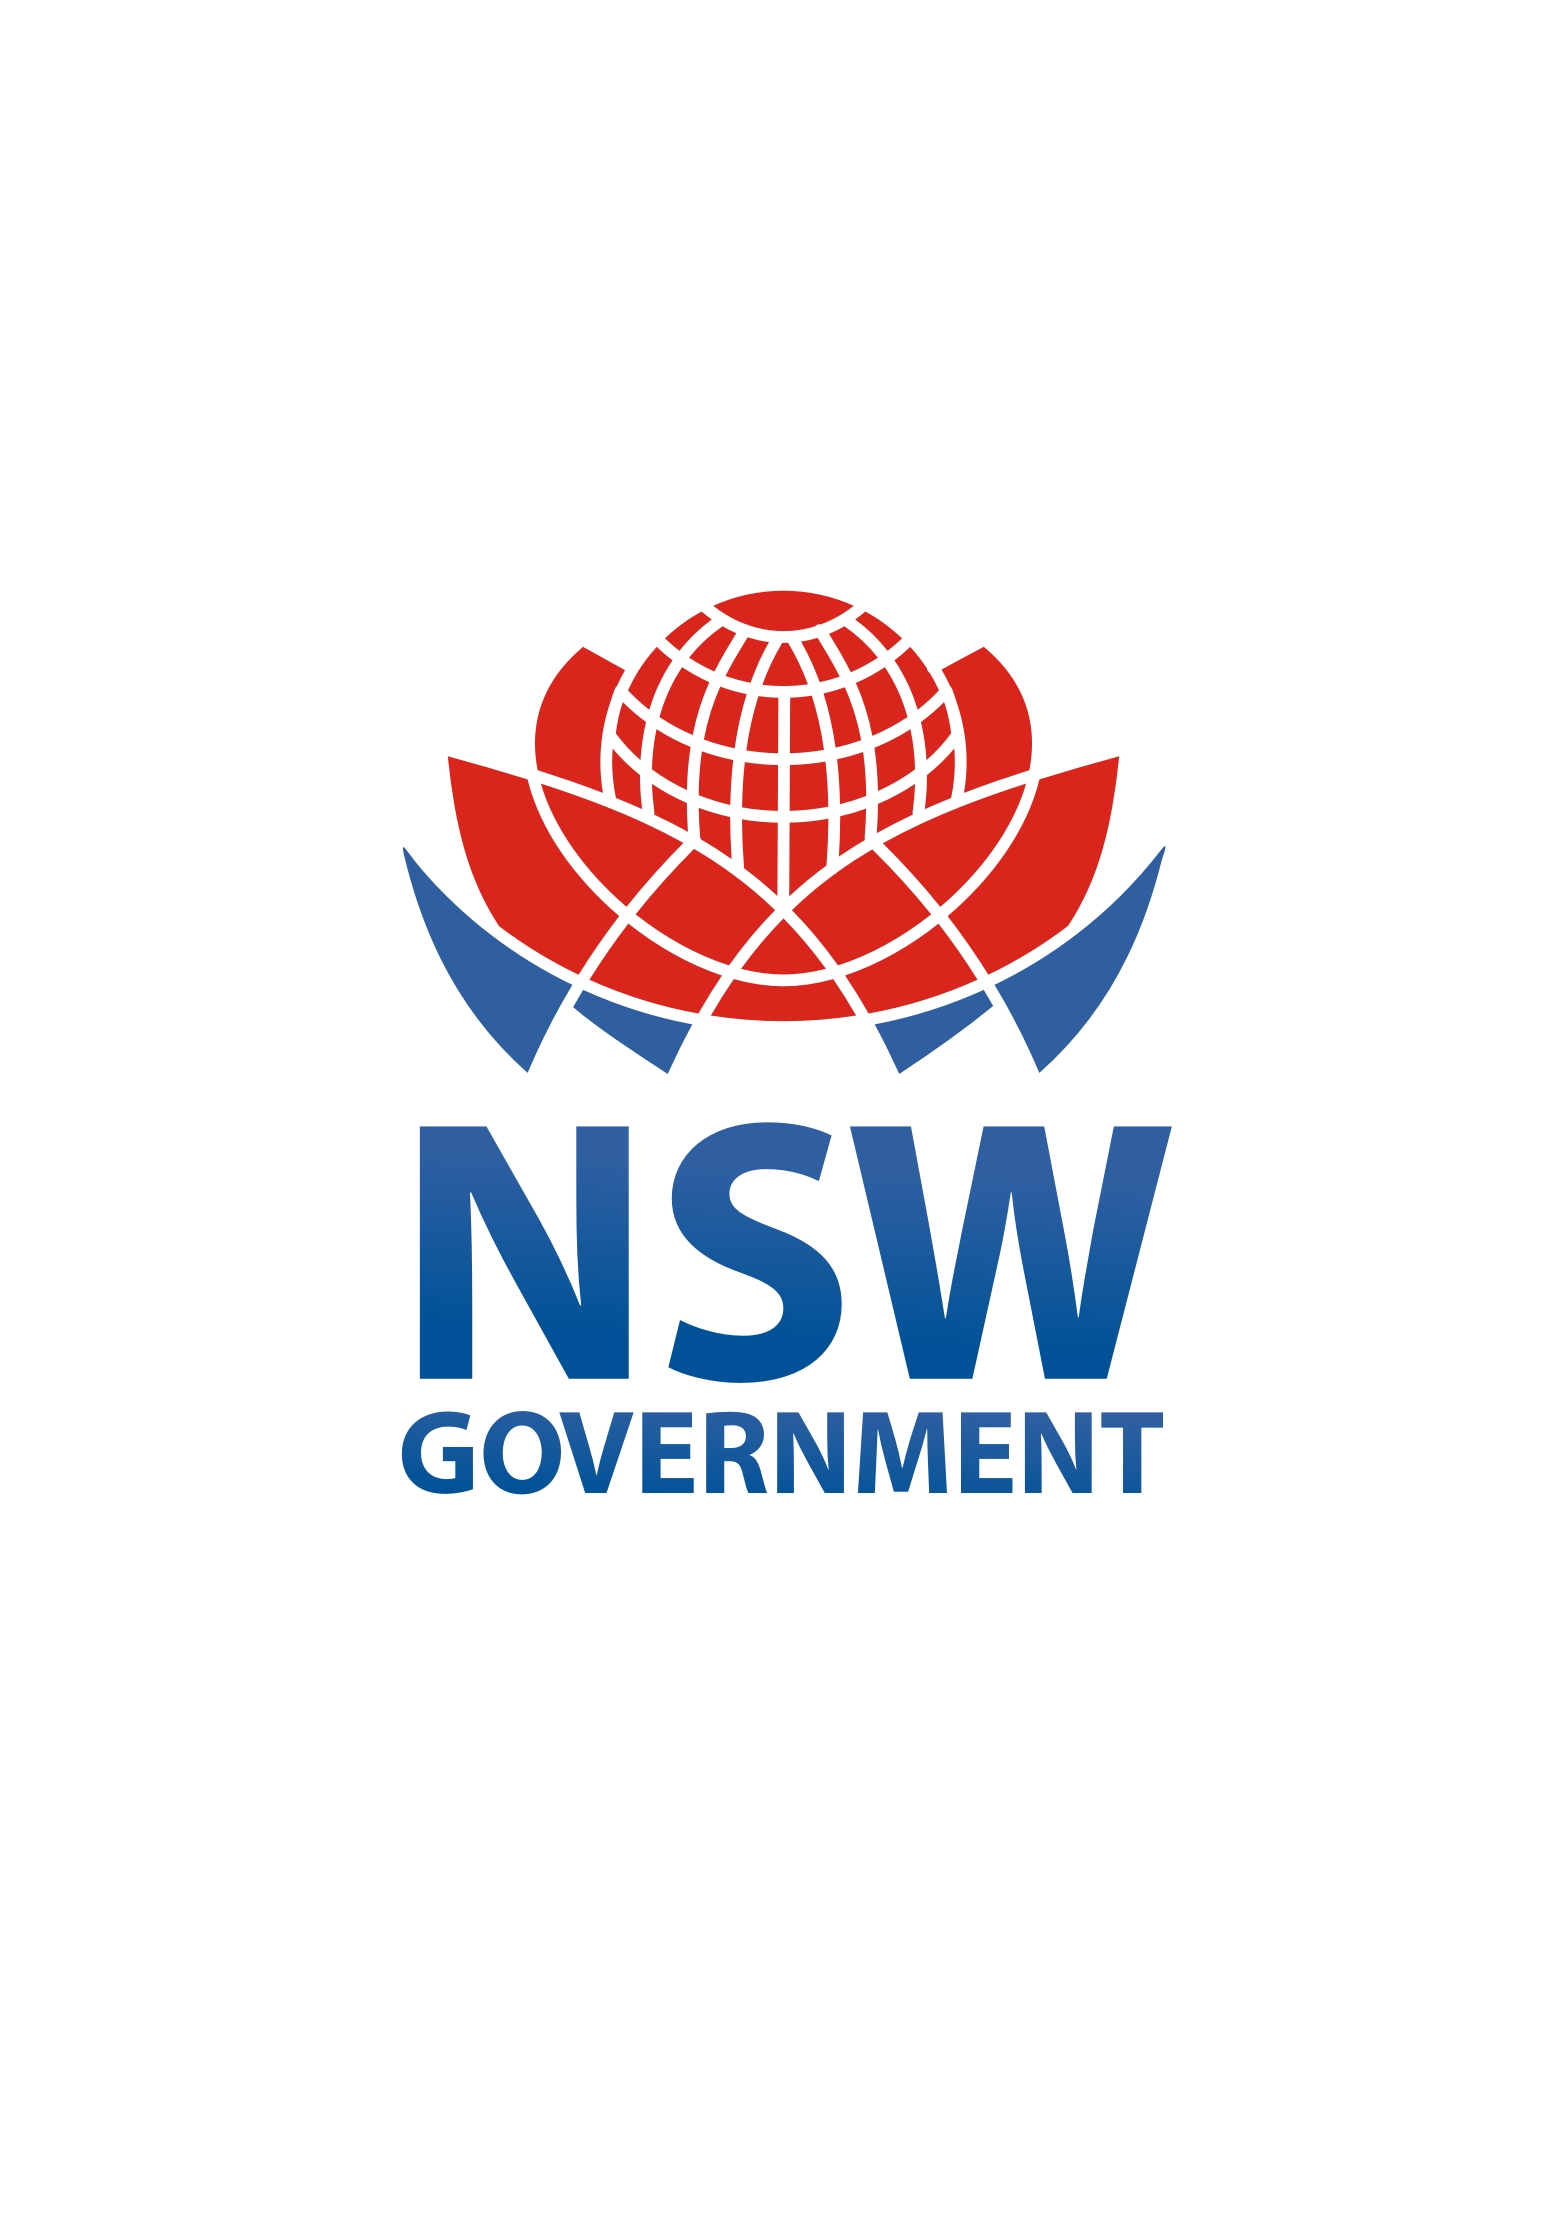 312 Professional Logo Designs For Nsw Government A